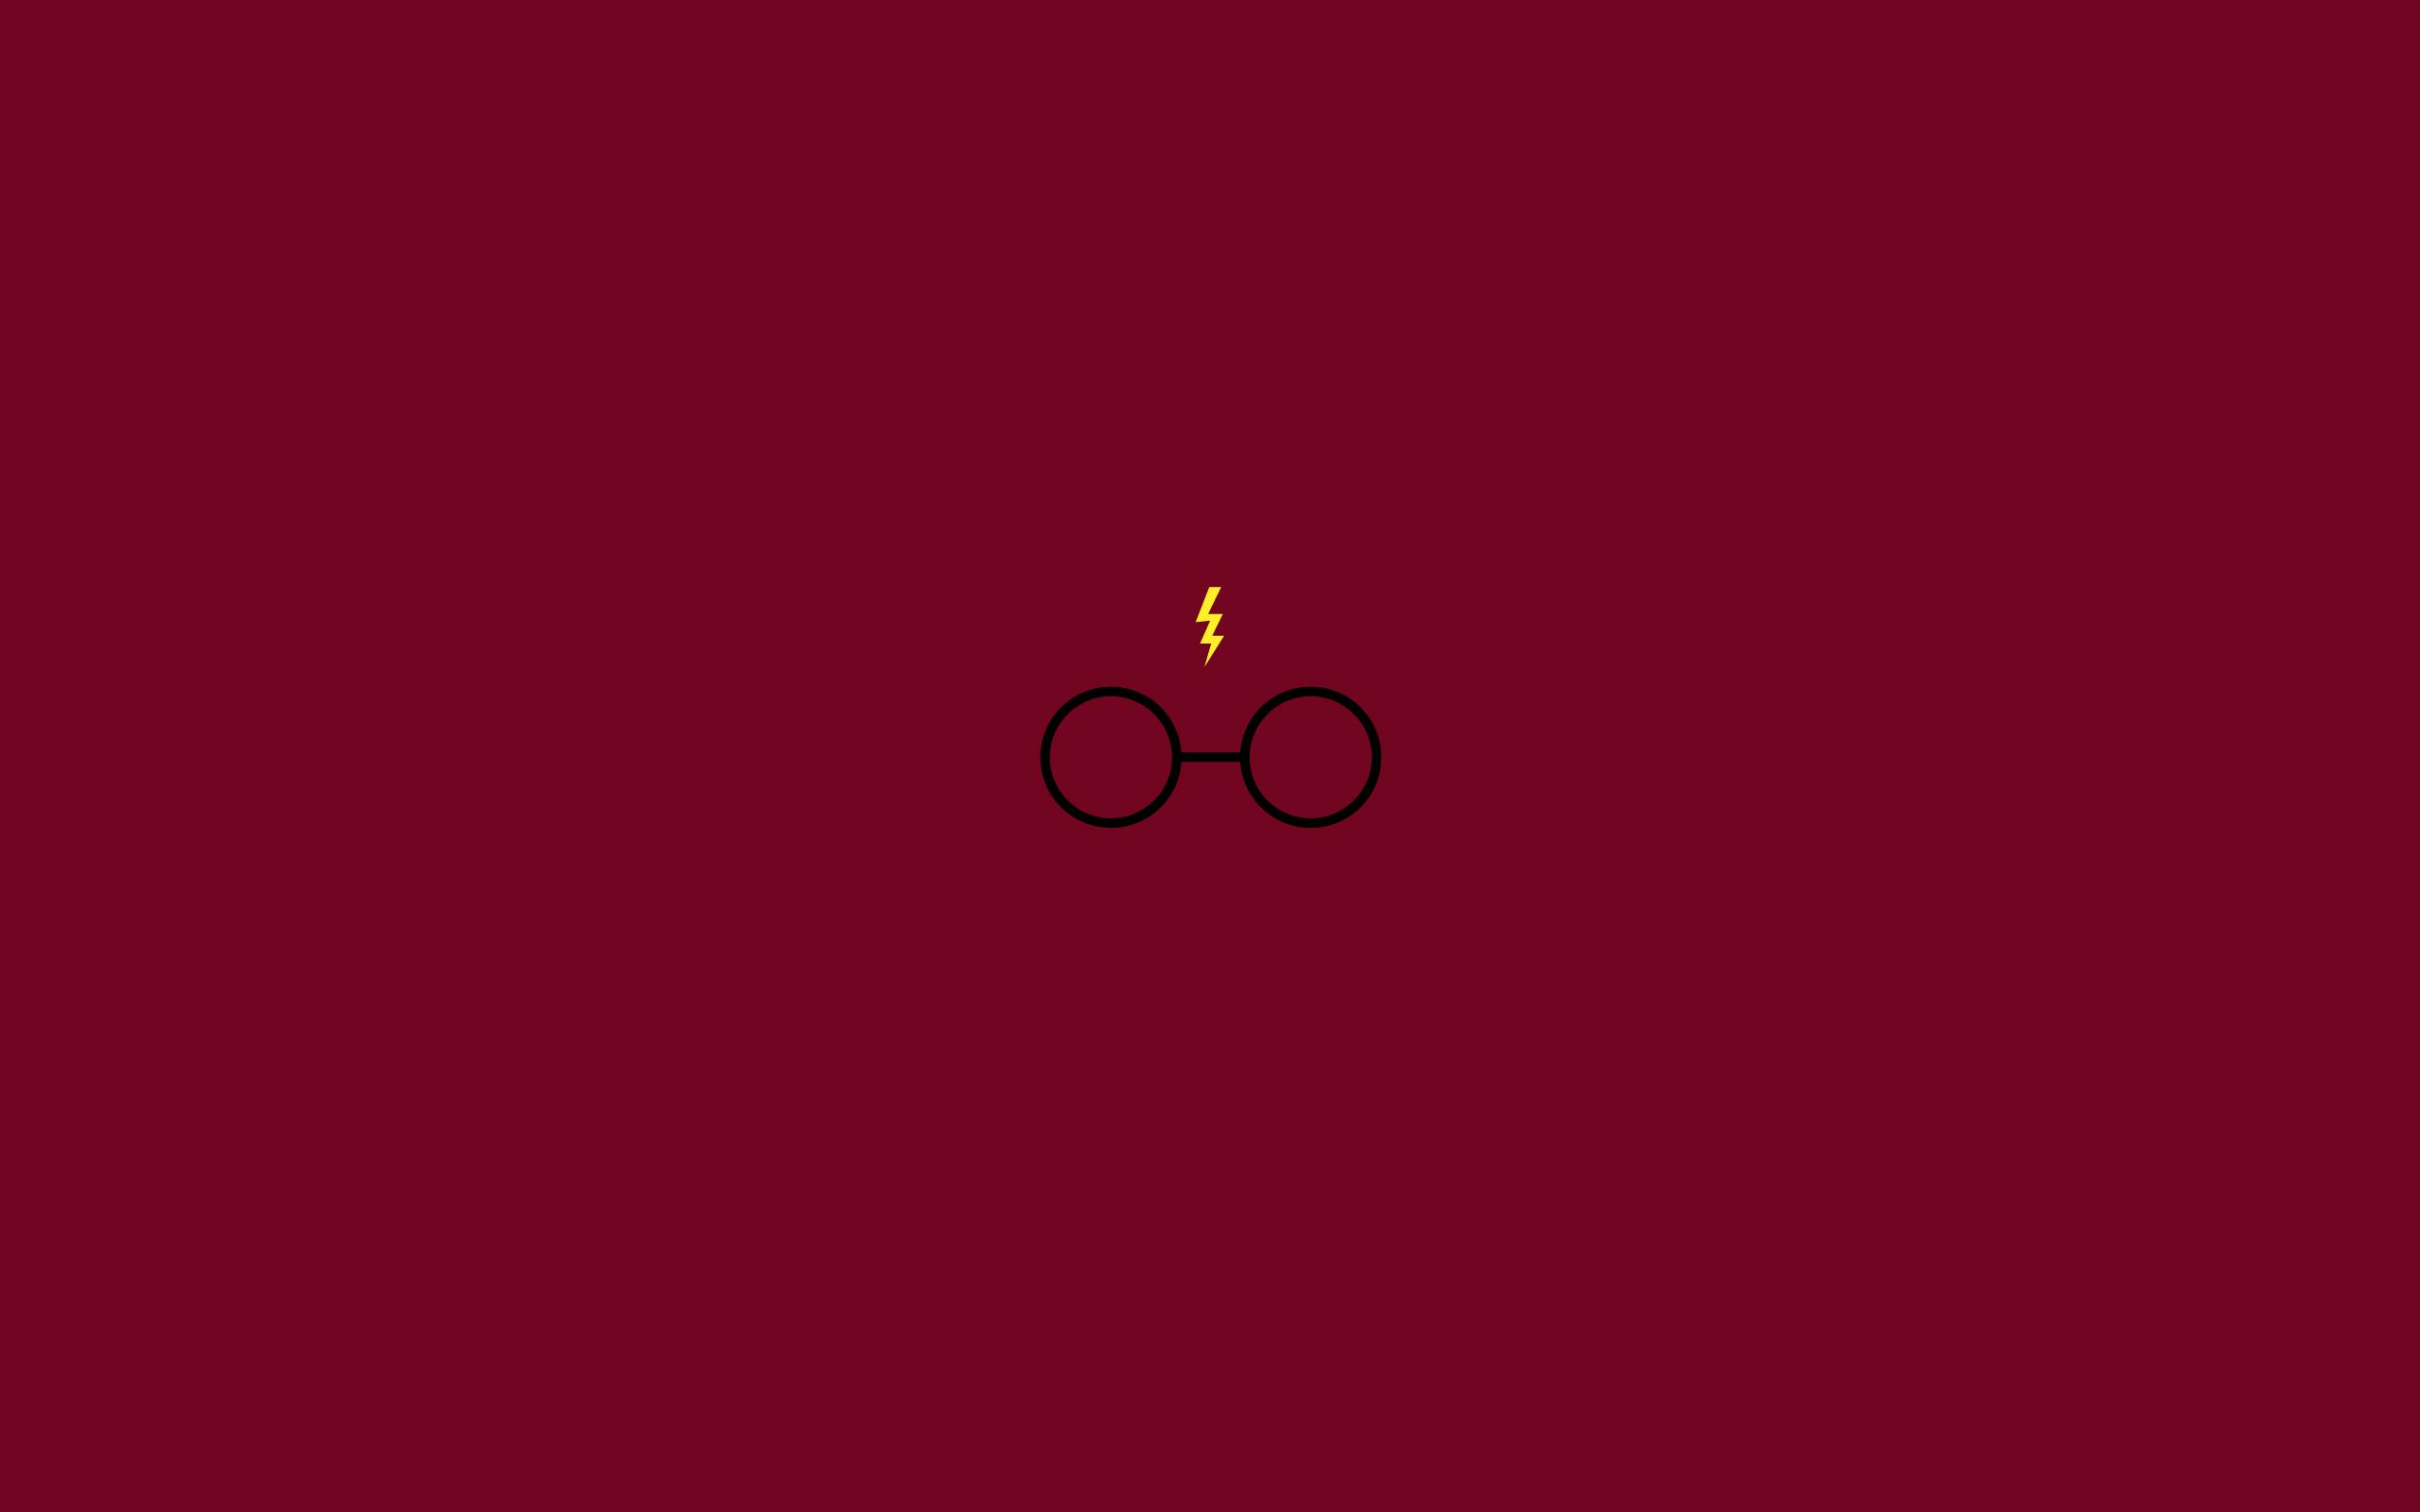 Harry Potter Aesthetic Wallpapers - Wallpaper Cave